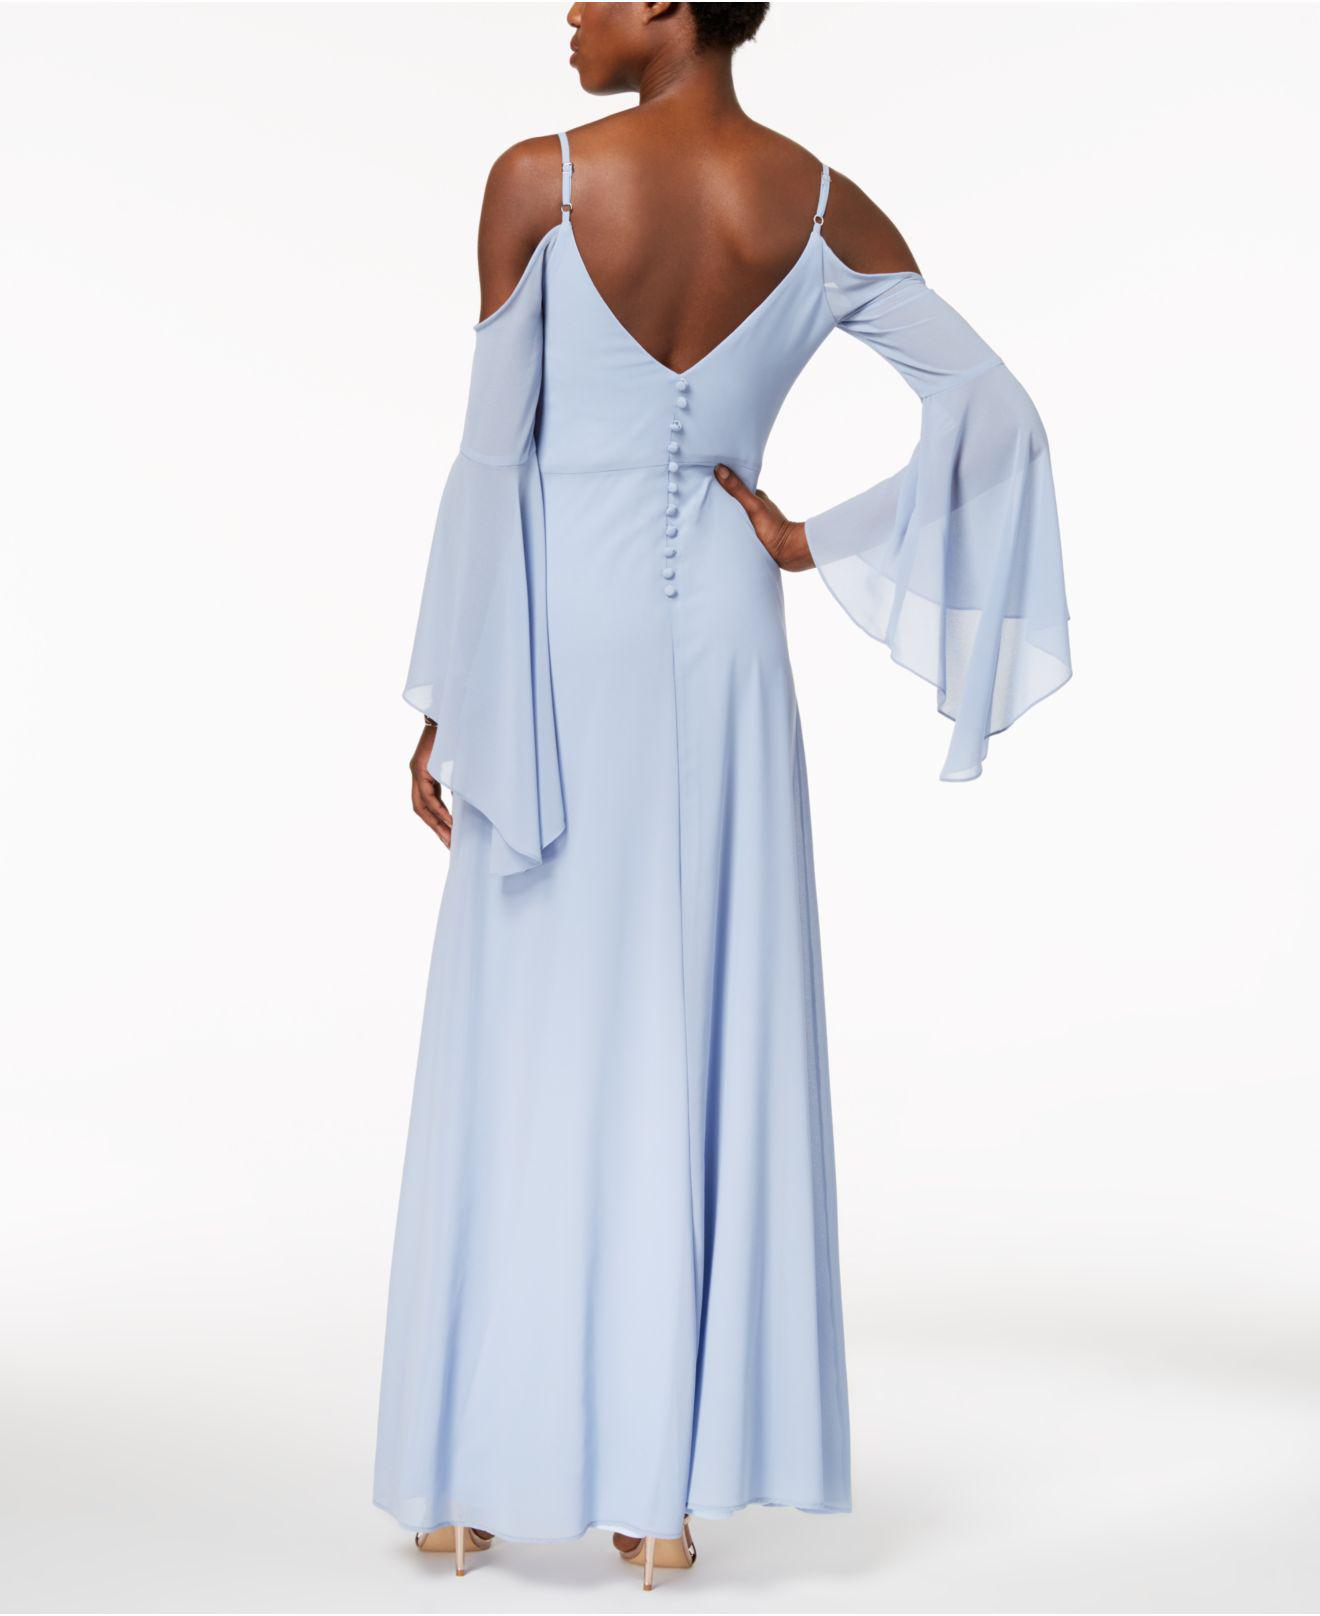 Lyst - Betsy & Adam Cold-shoulder Angel-sleeve Gown in Blue